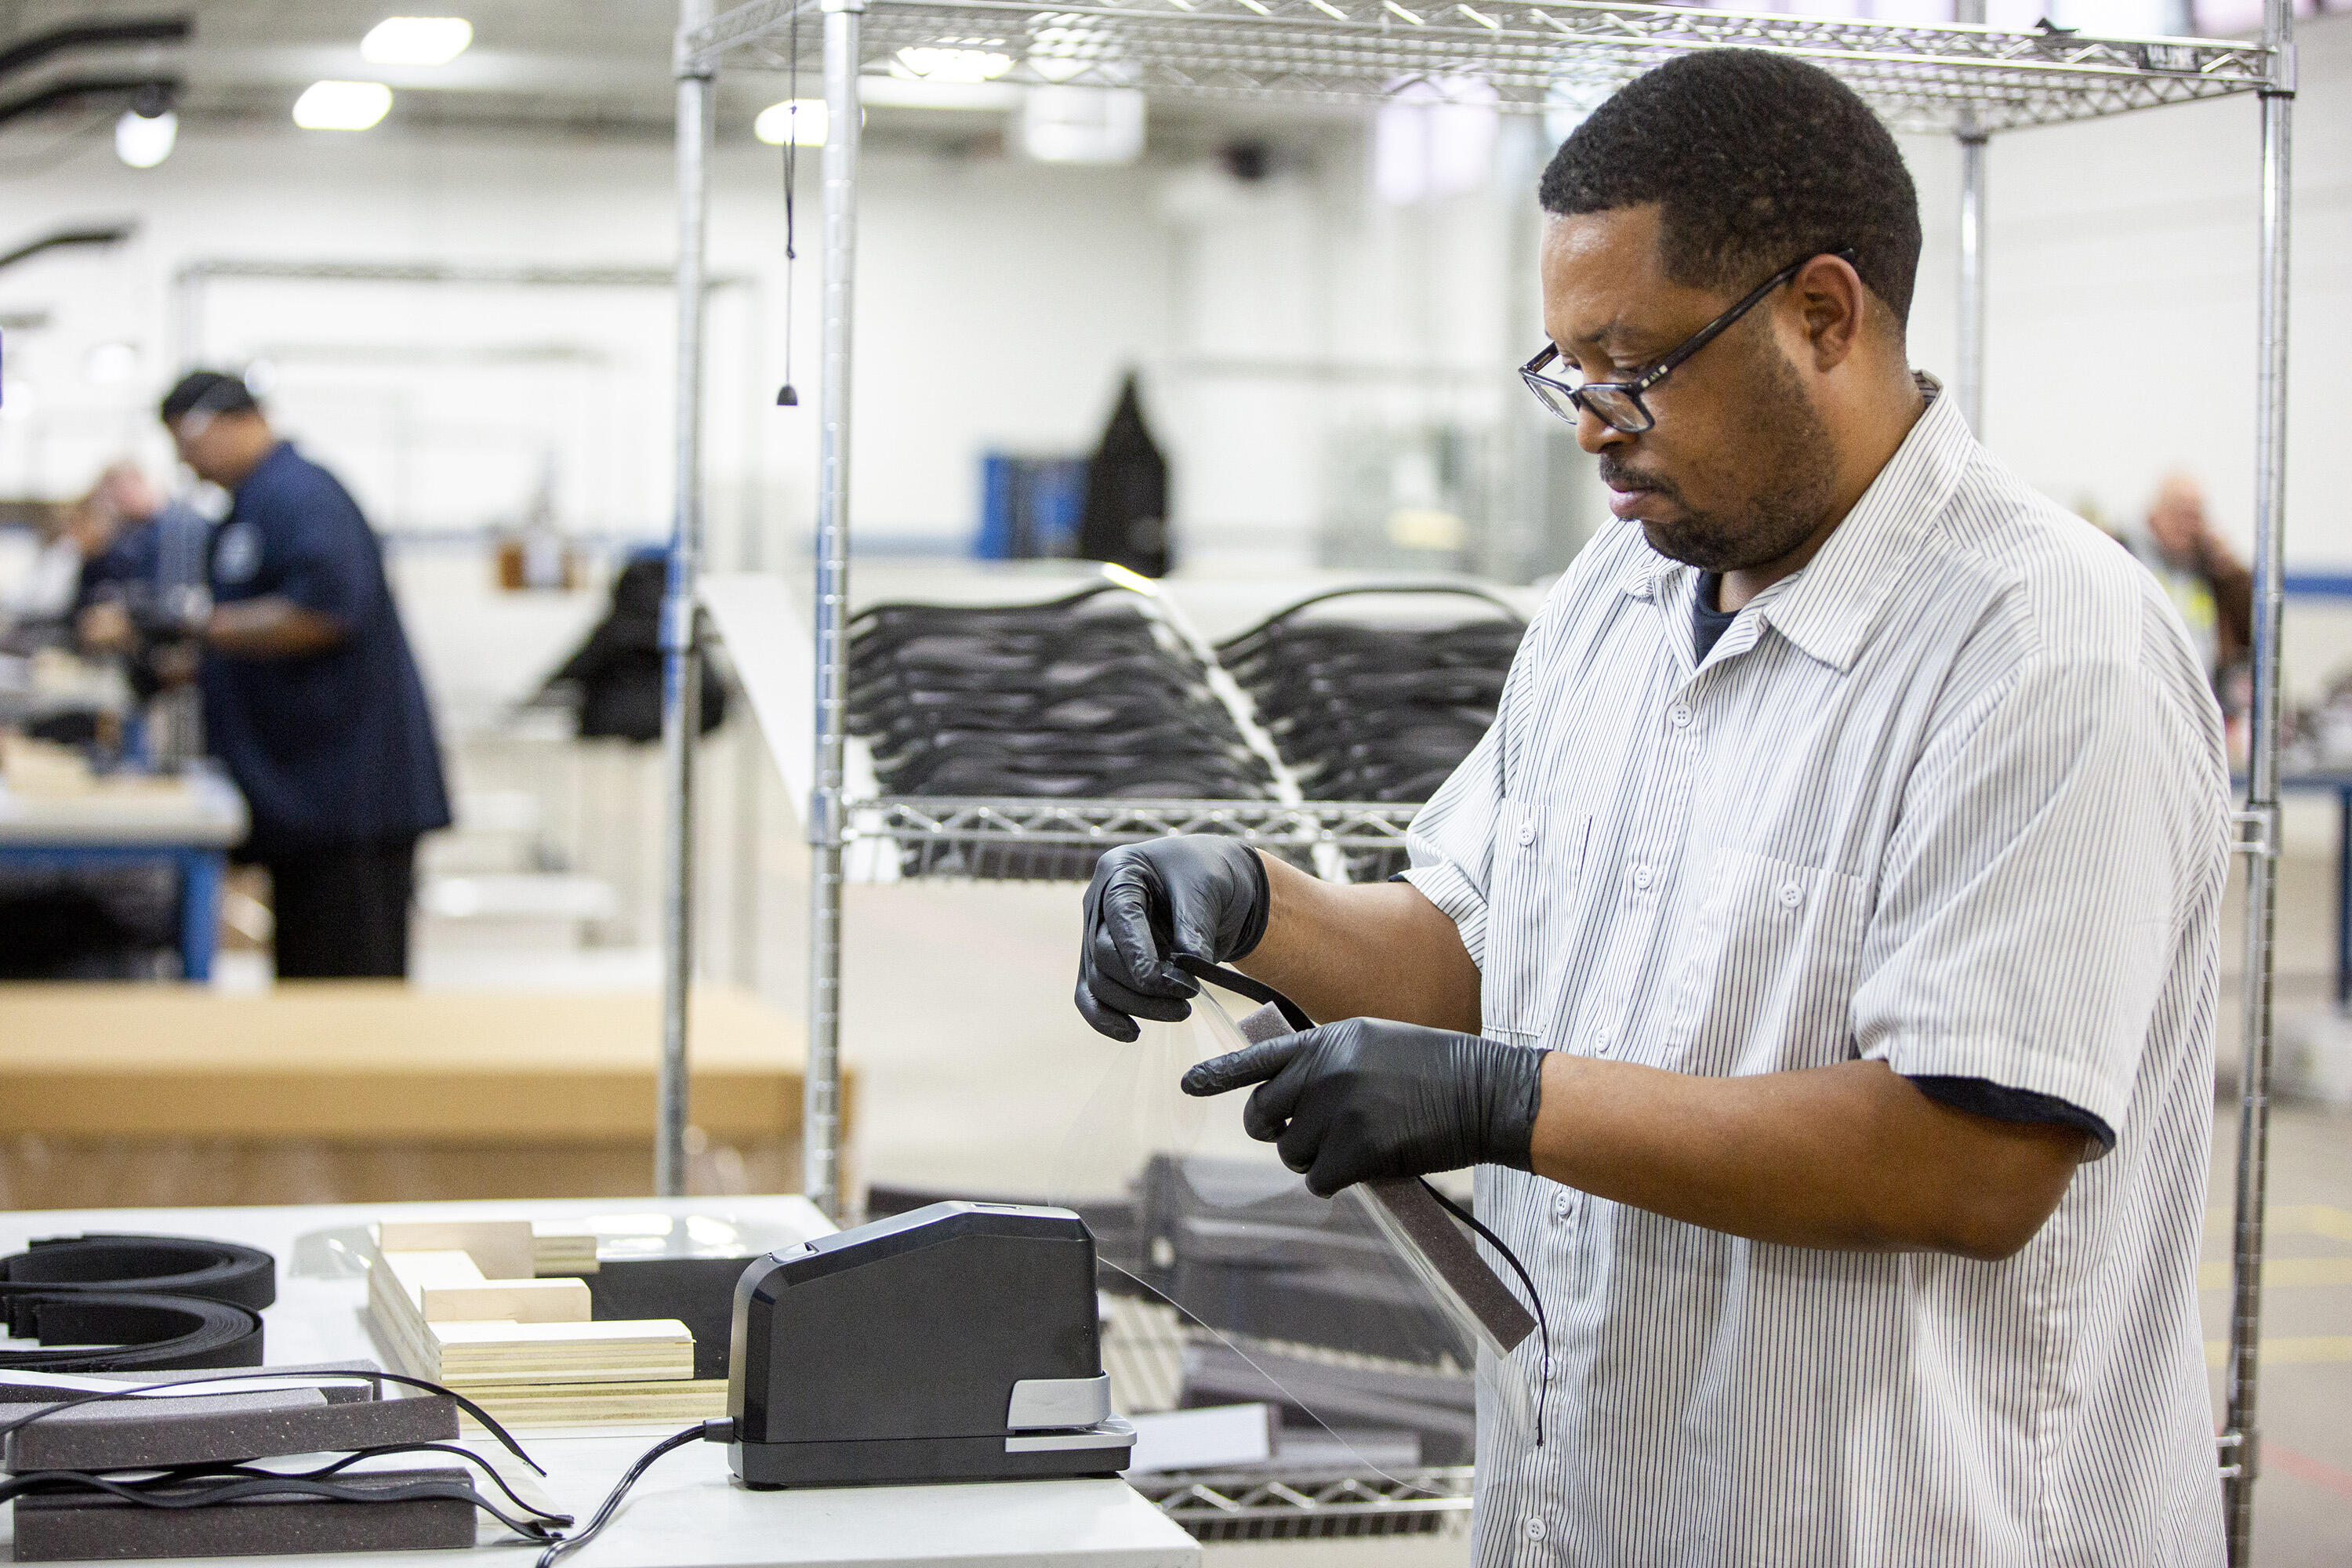 Ford builds PPE amid COVID-19 pandemic